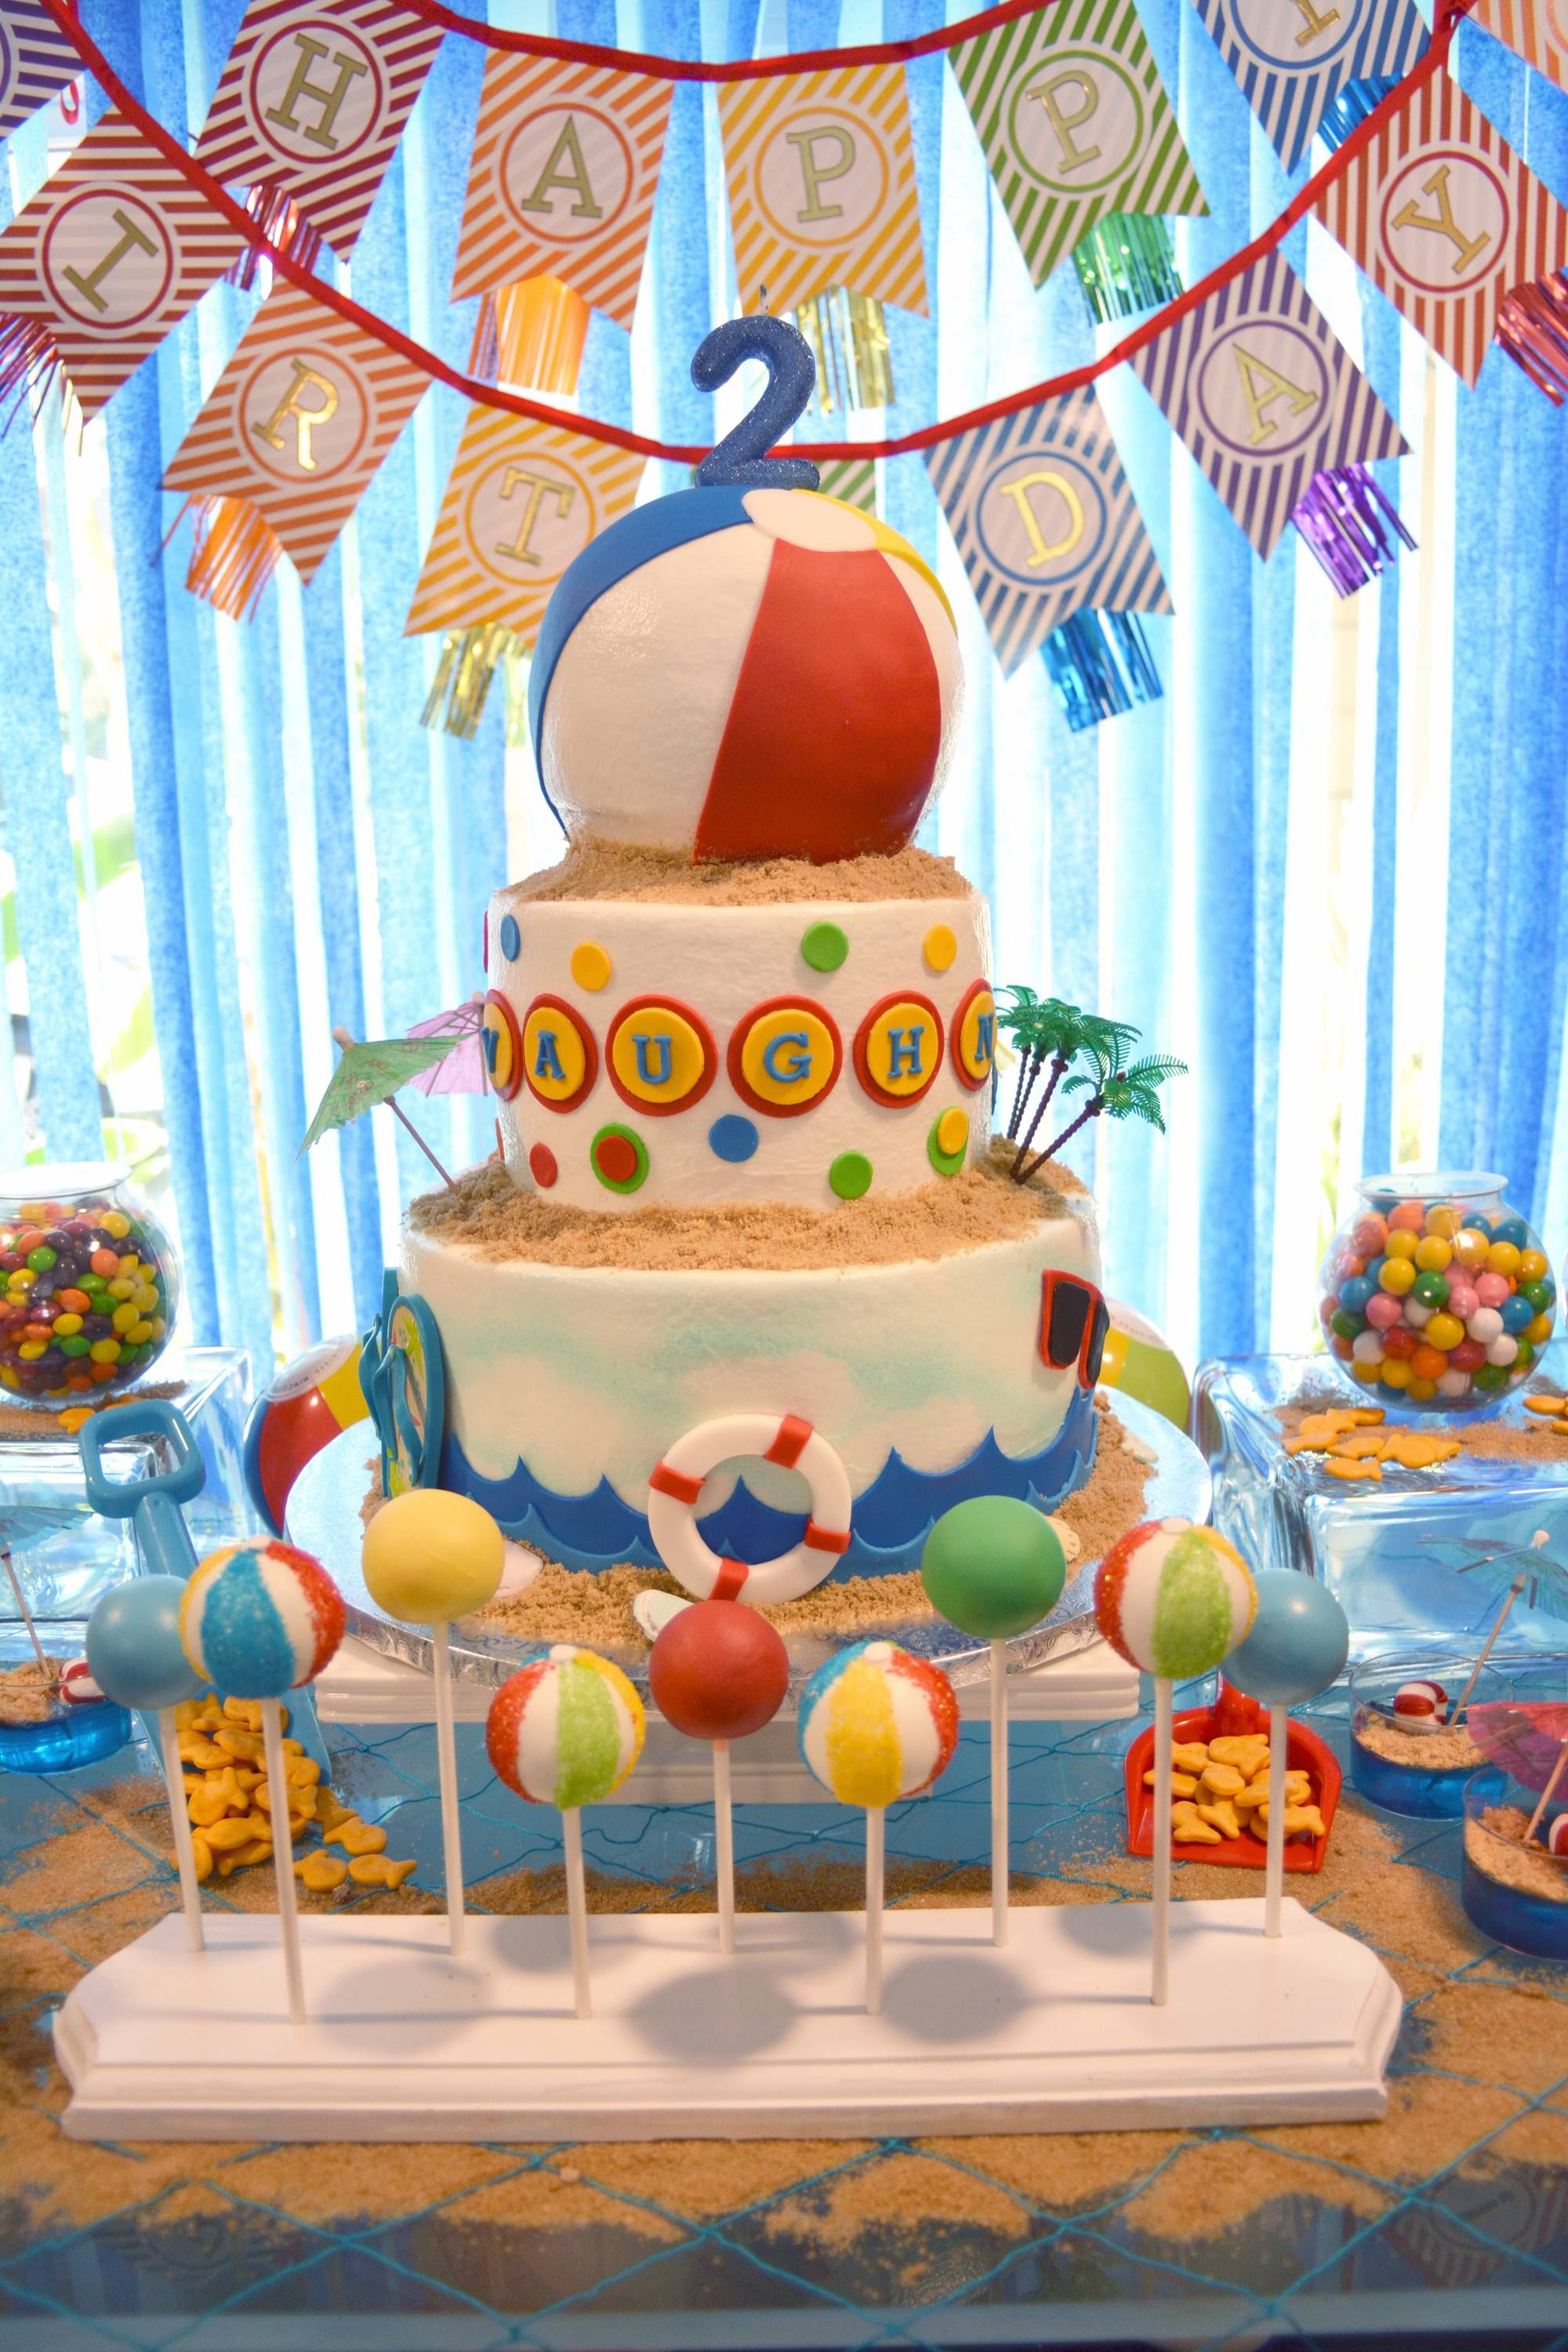 Superb Pool Party Themed Birthday Cake With Images Pool Birthday Funny Birthday Cards Online Barepcheapnameinfo